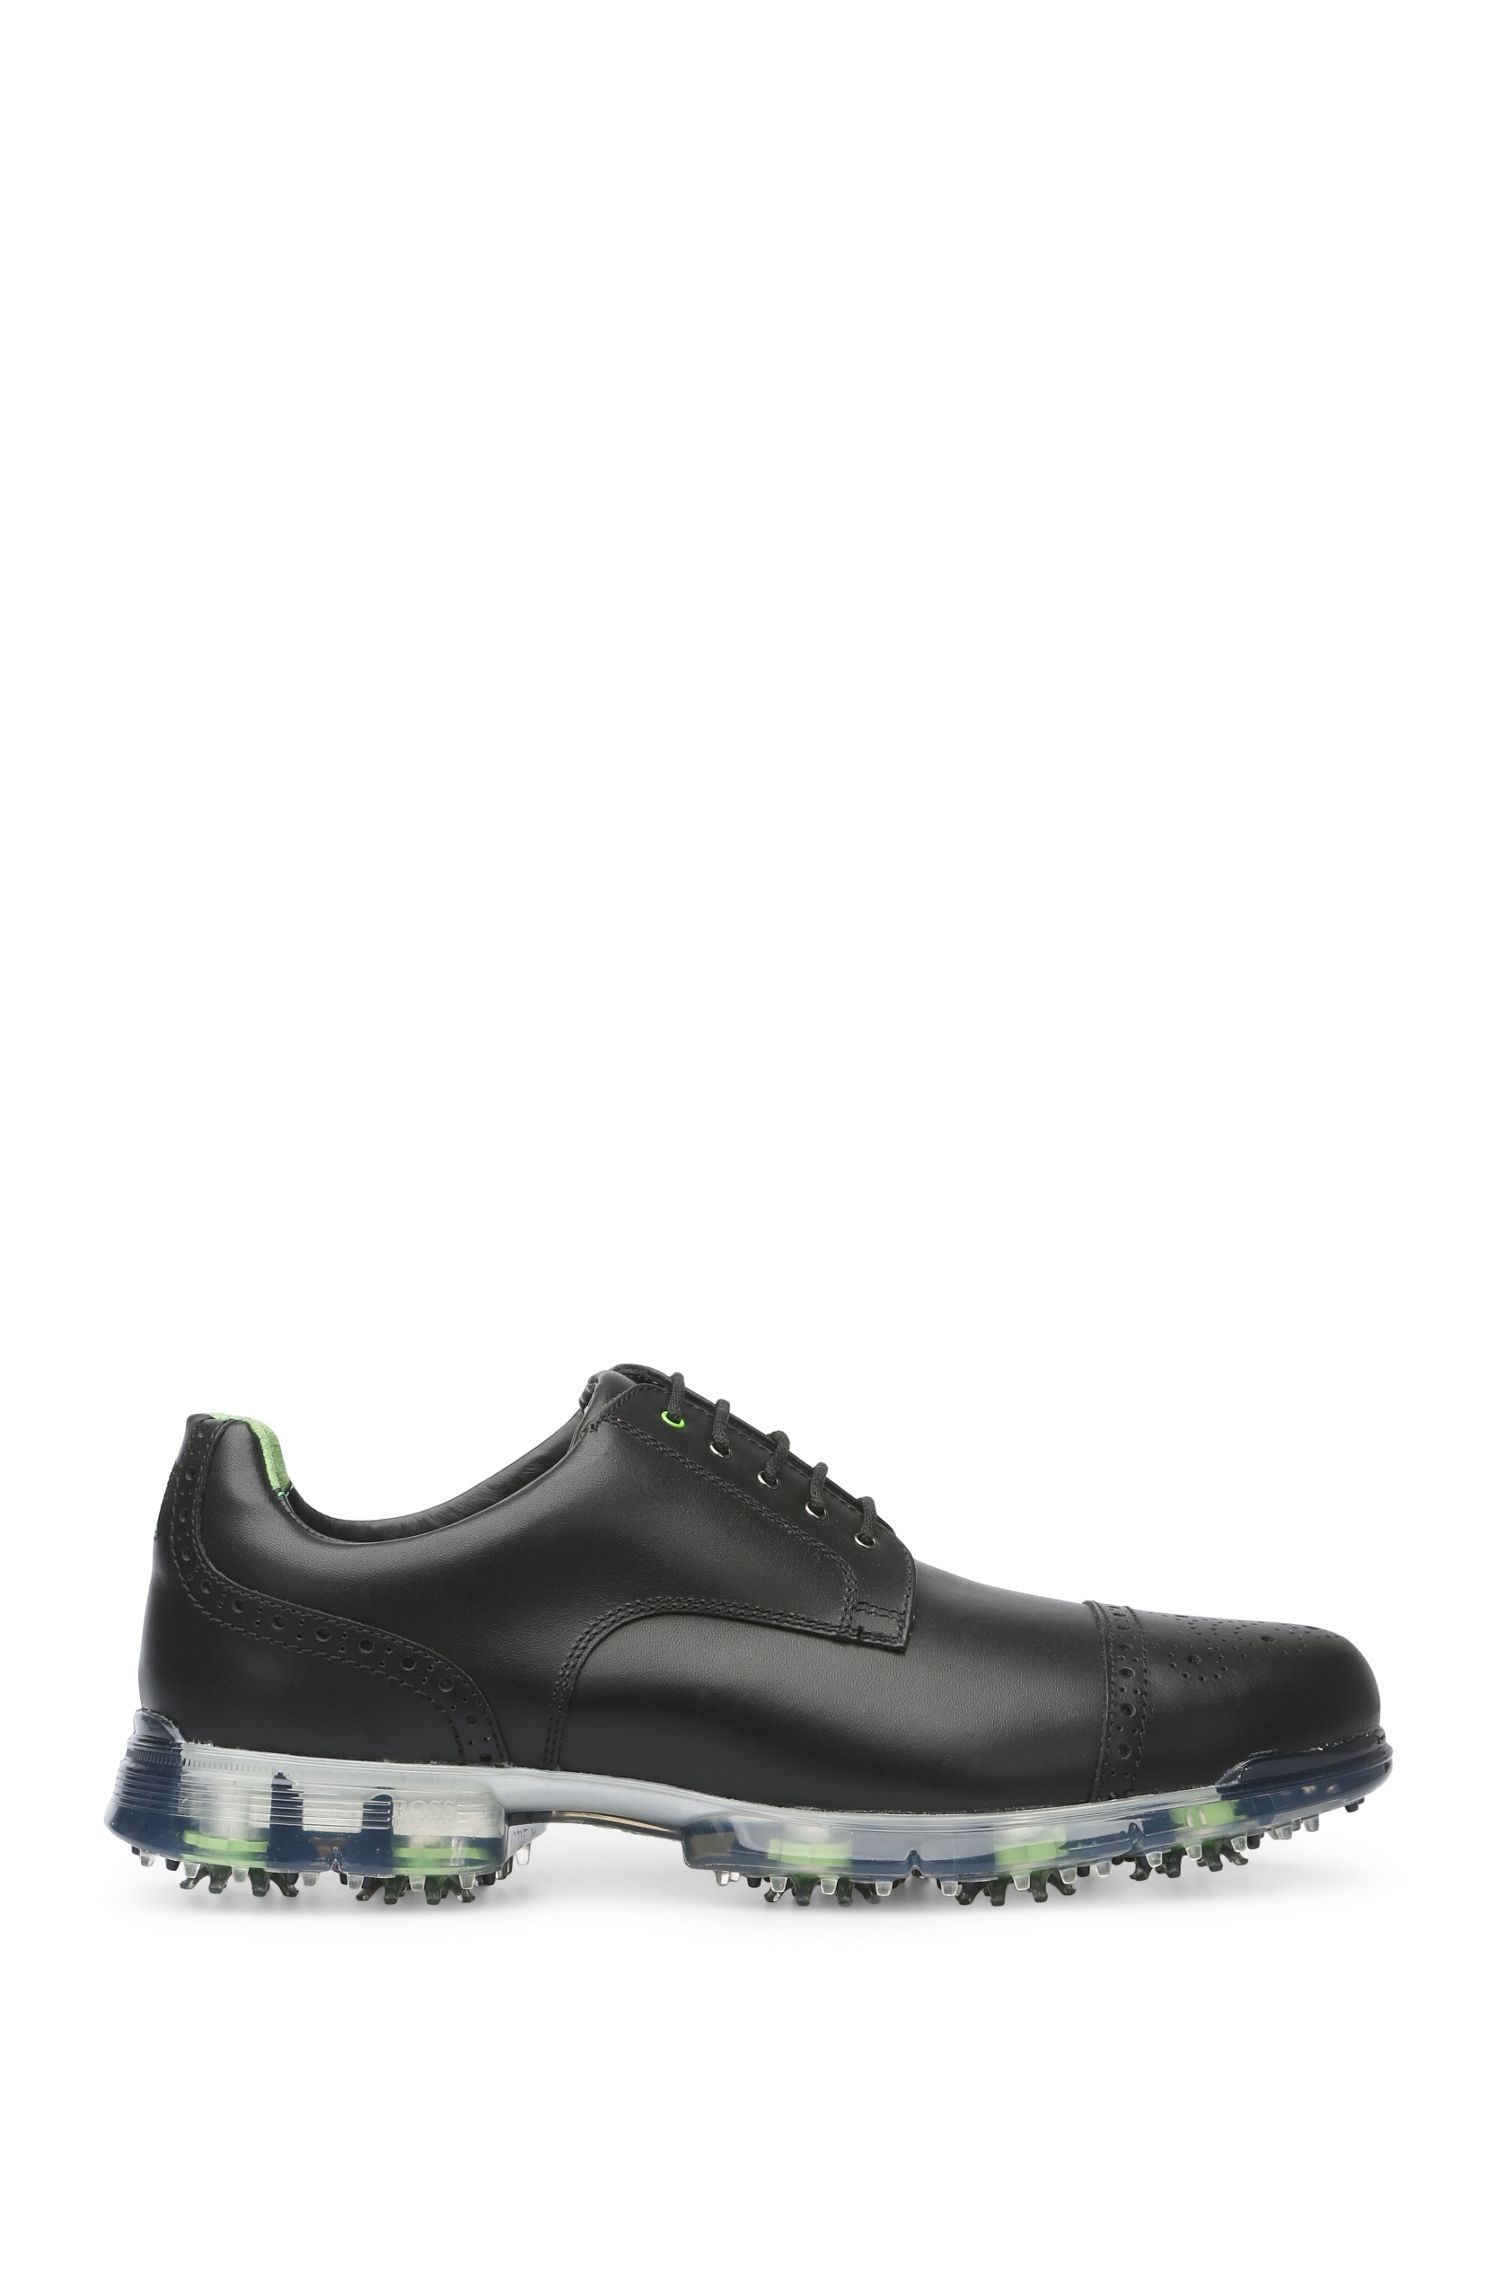 Zapatos de golf en piel con brocado: 'Golfpro_Golf_ltct'